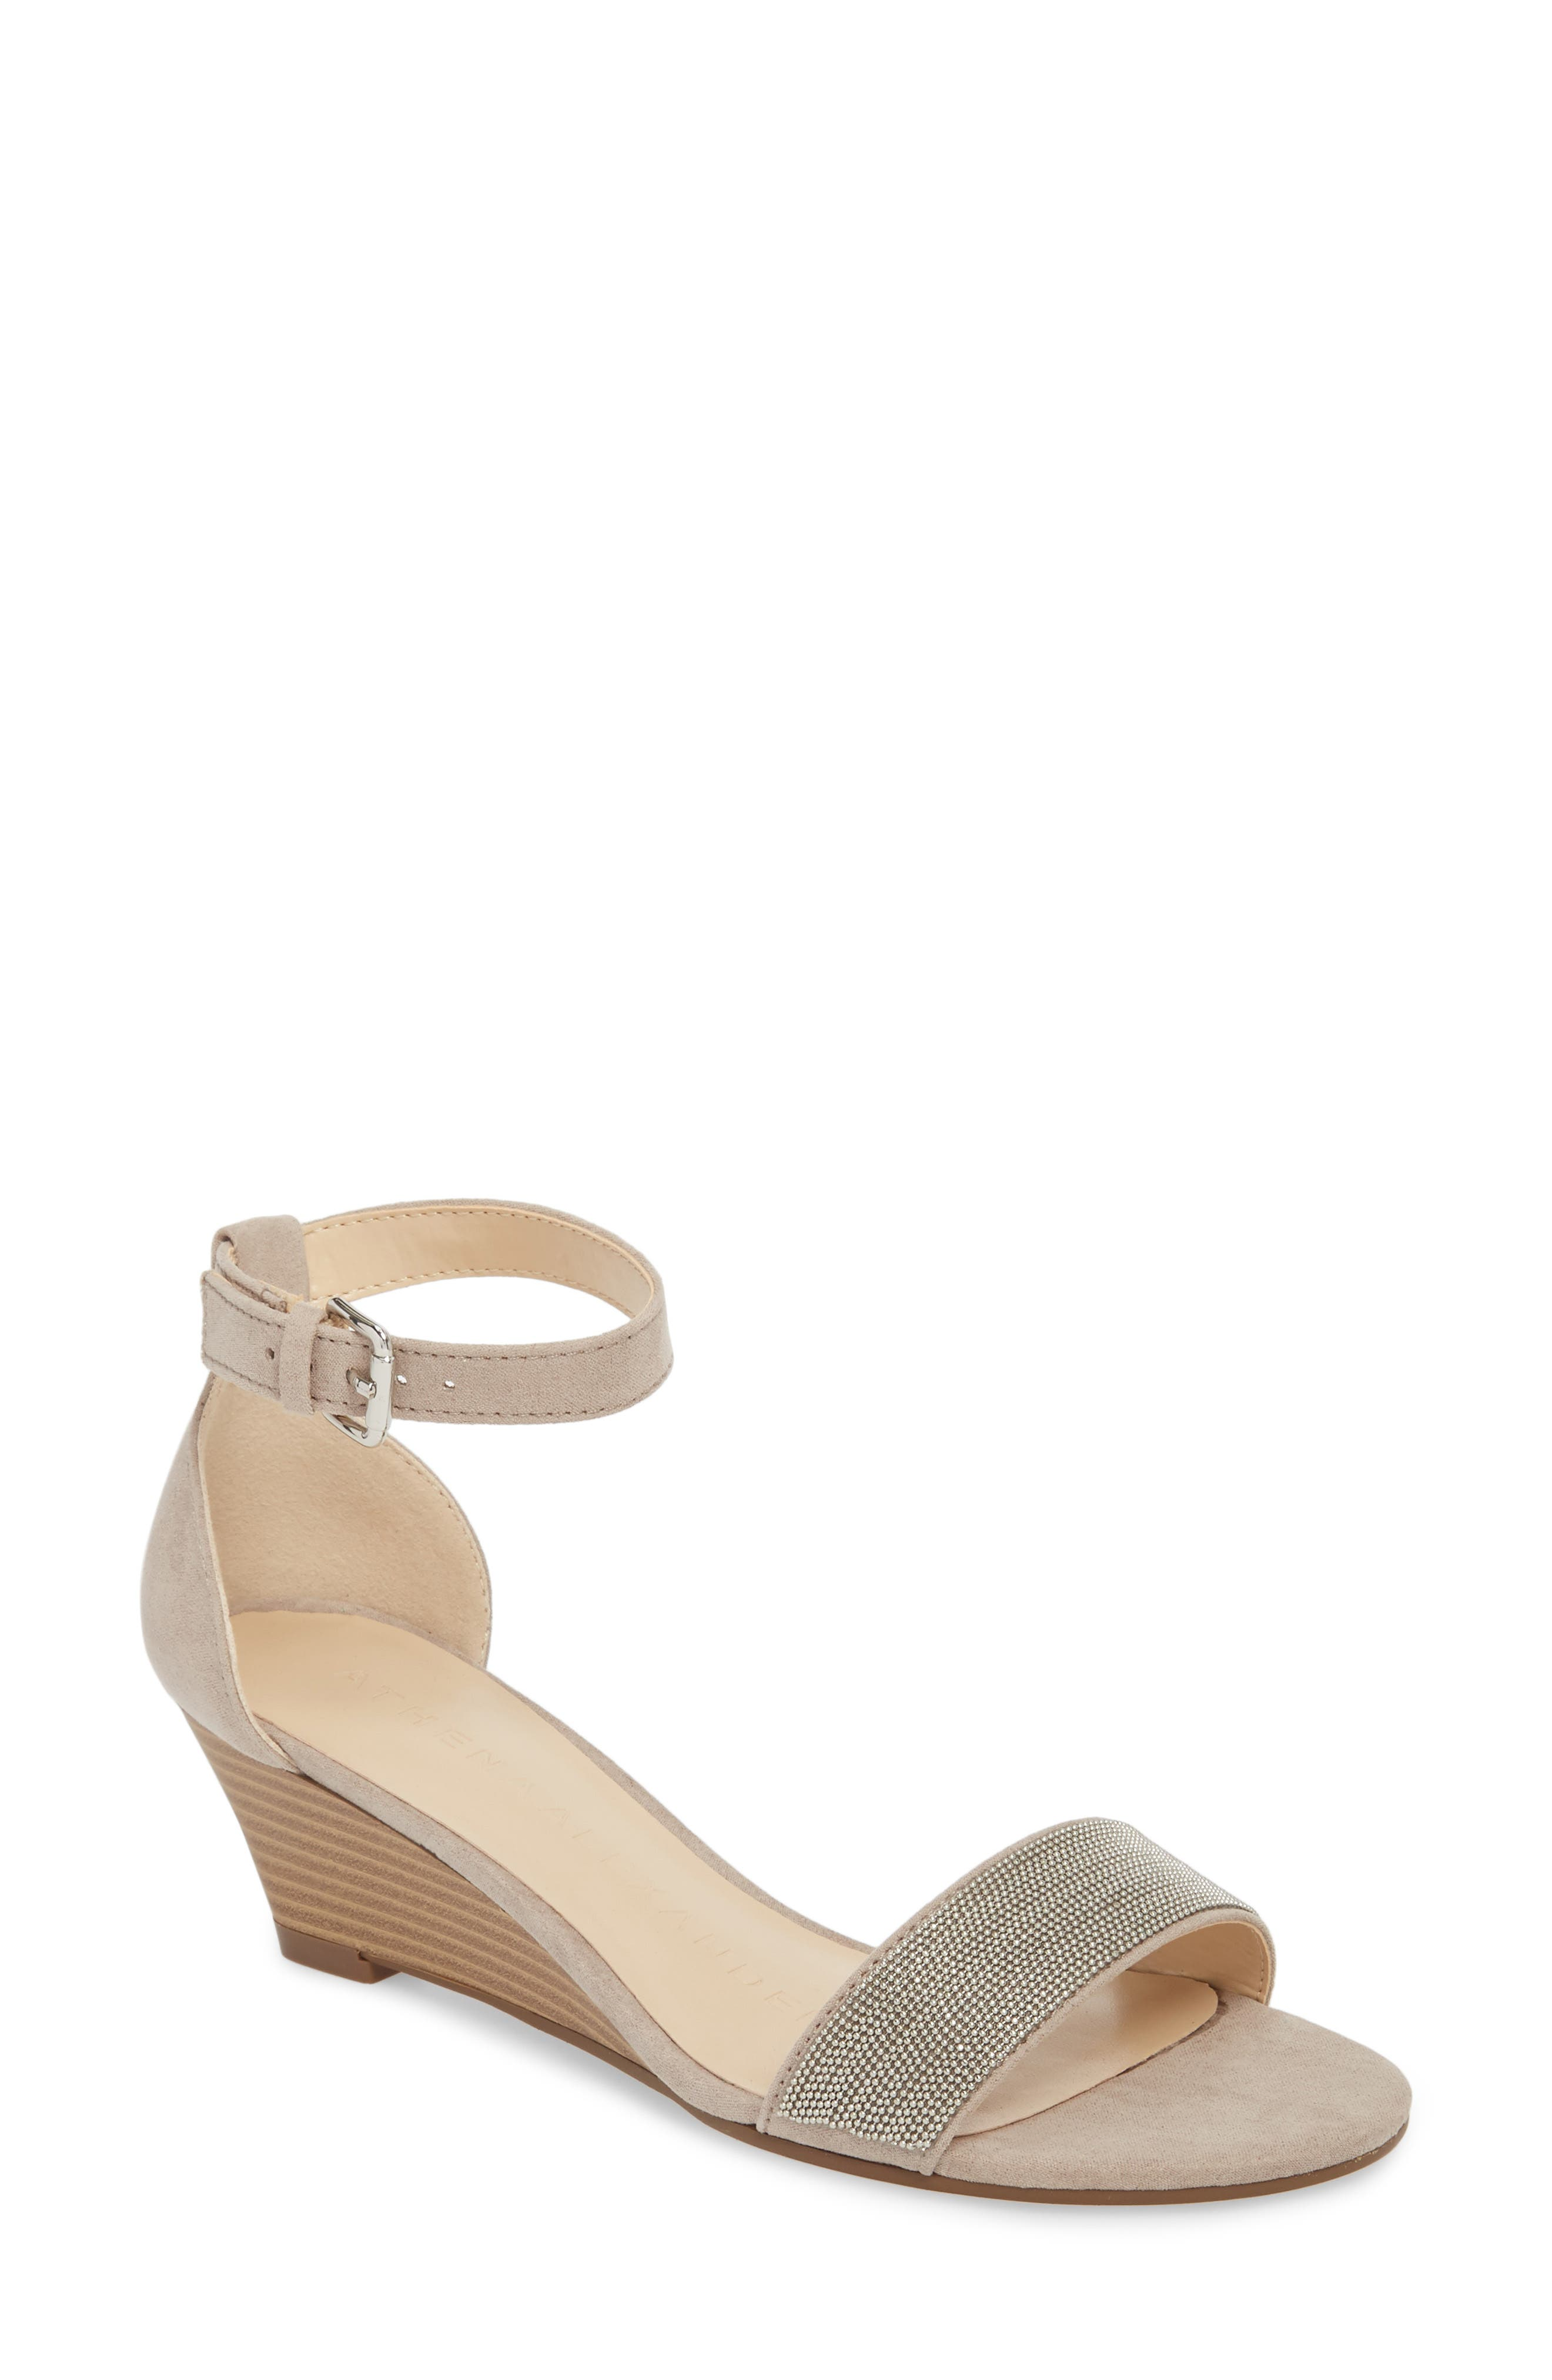 Enfield Ankle Strap Wedge Sandal,                         Main,                         color, TAUPE SUEDE